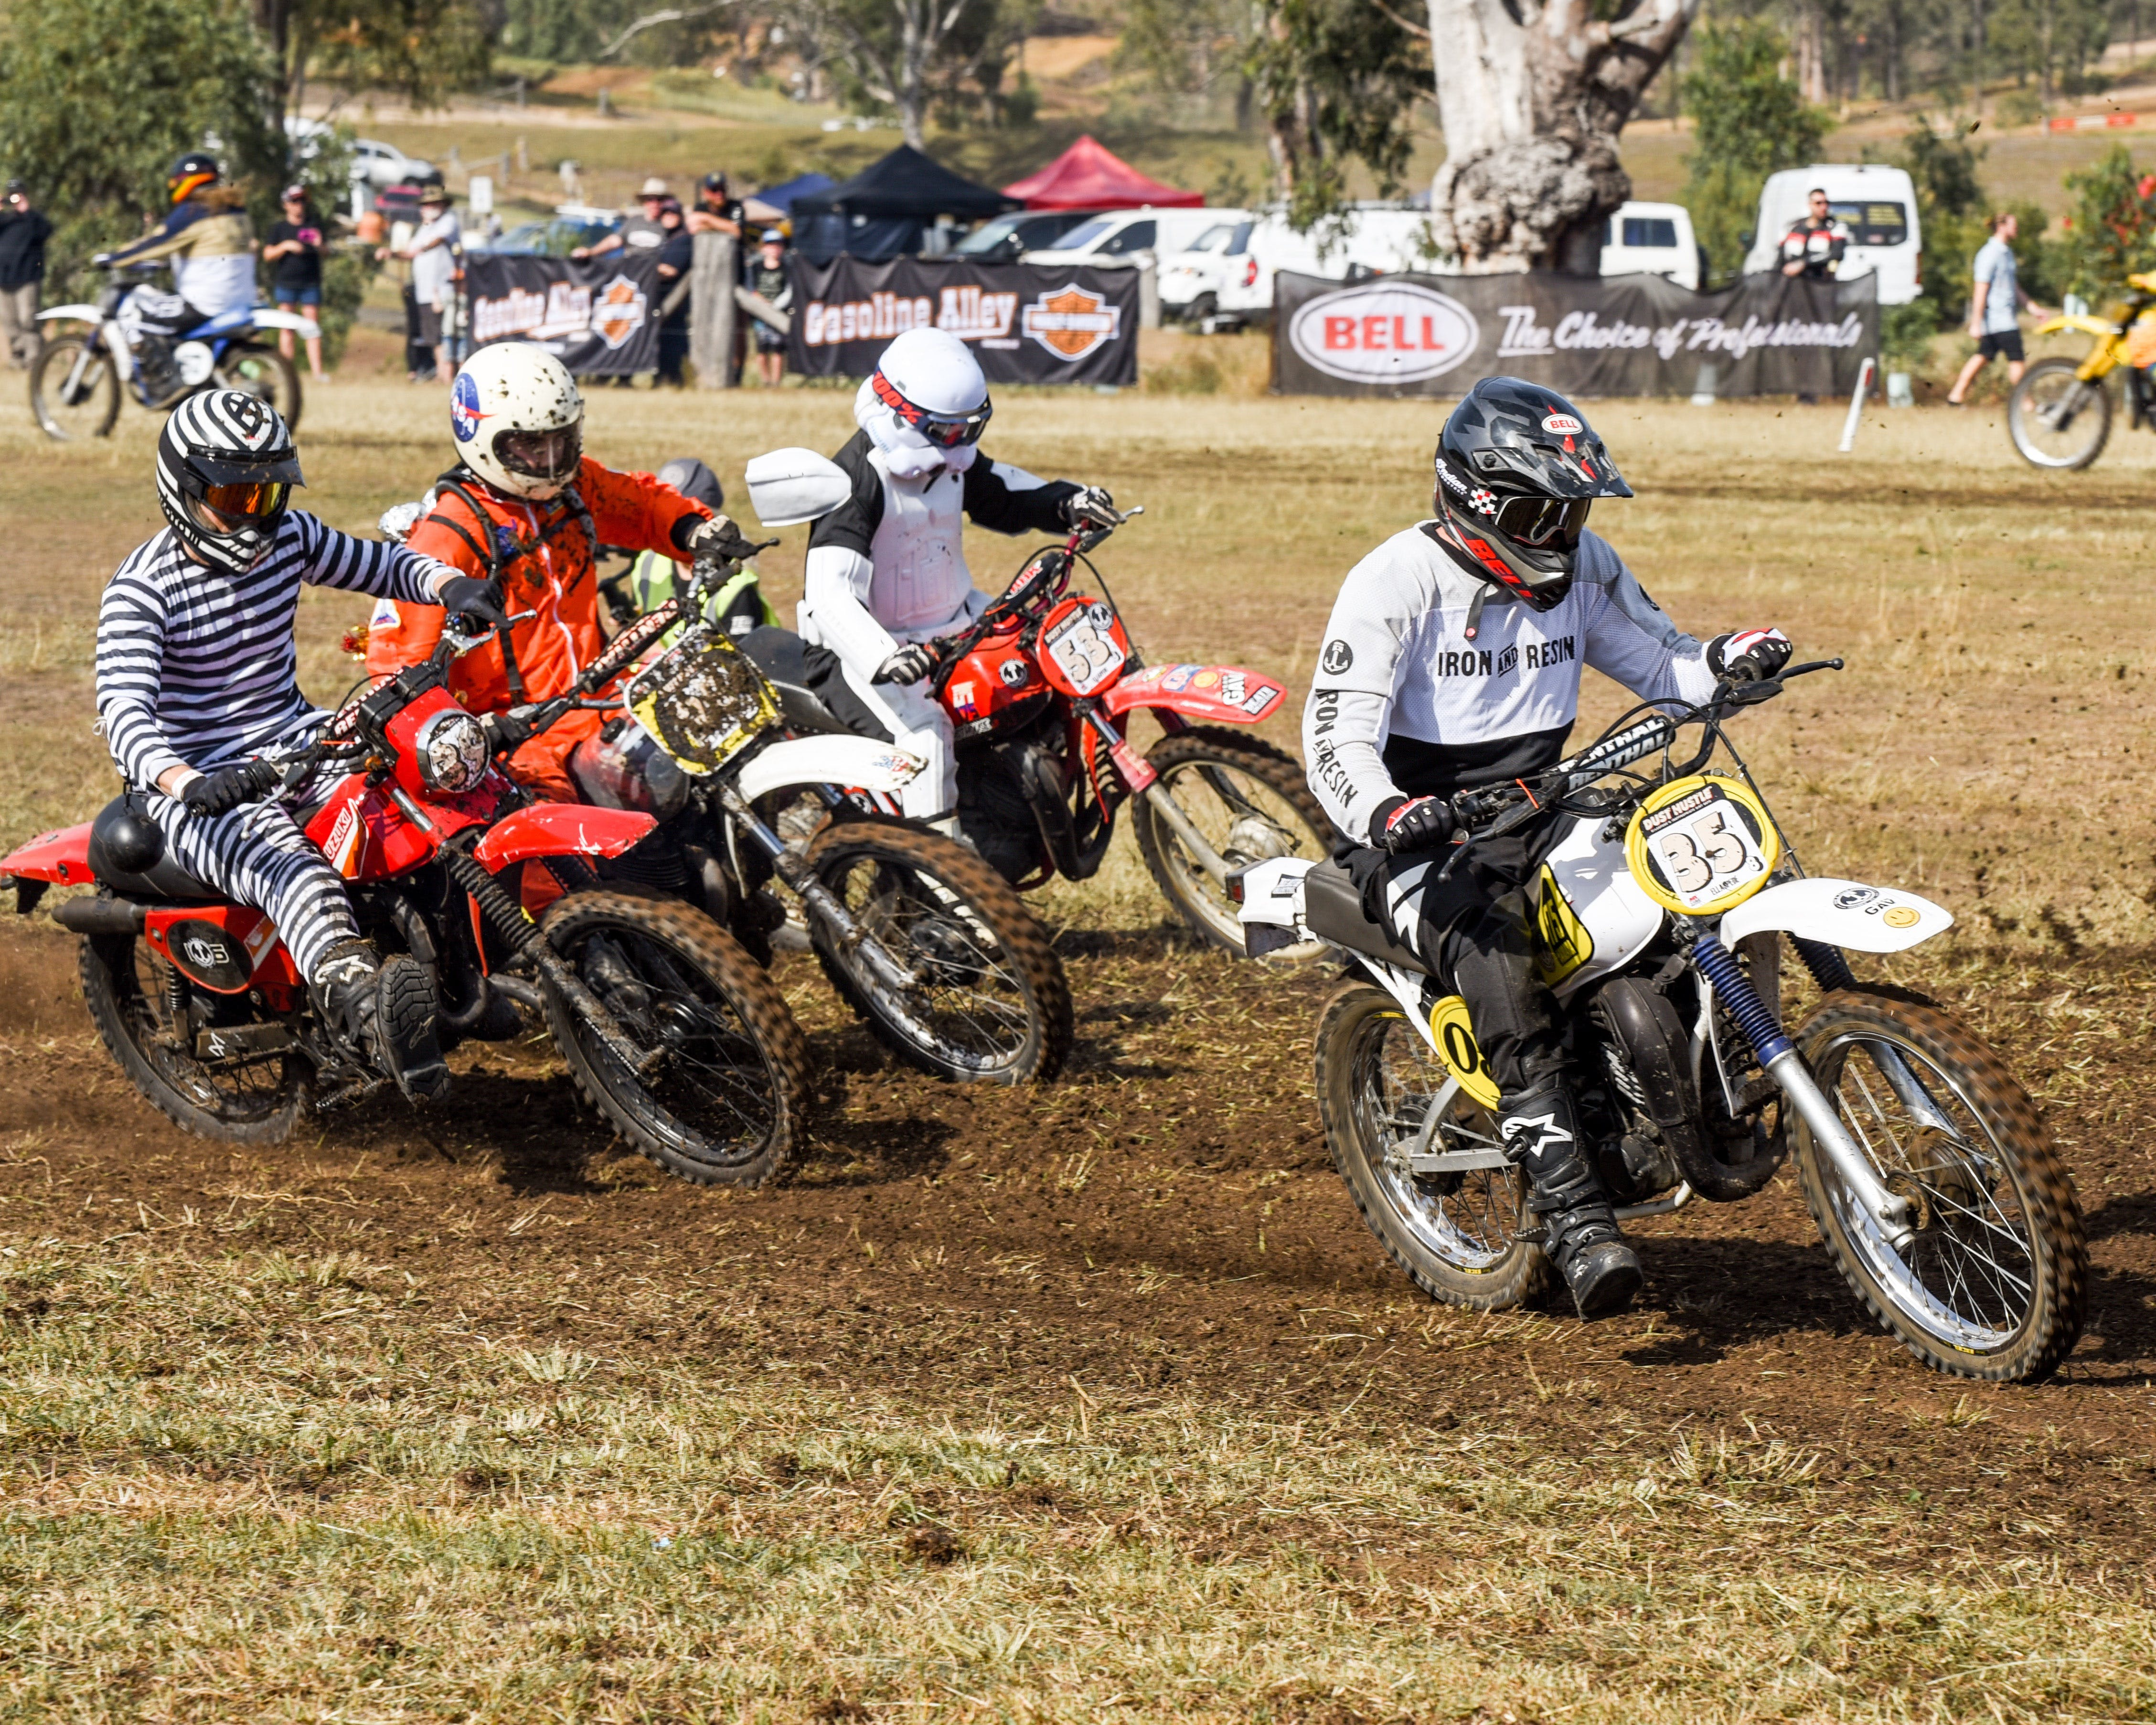 Dust Hustle Queensland Moto Park - Yarra Valley Accommodation